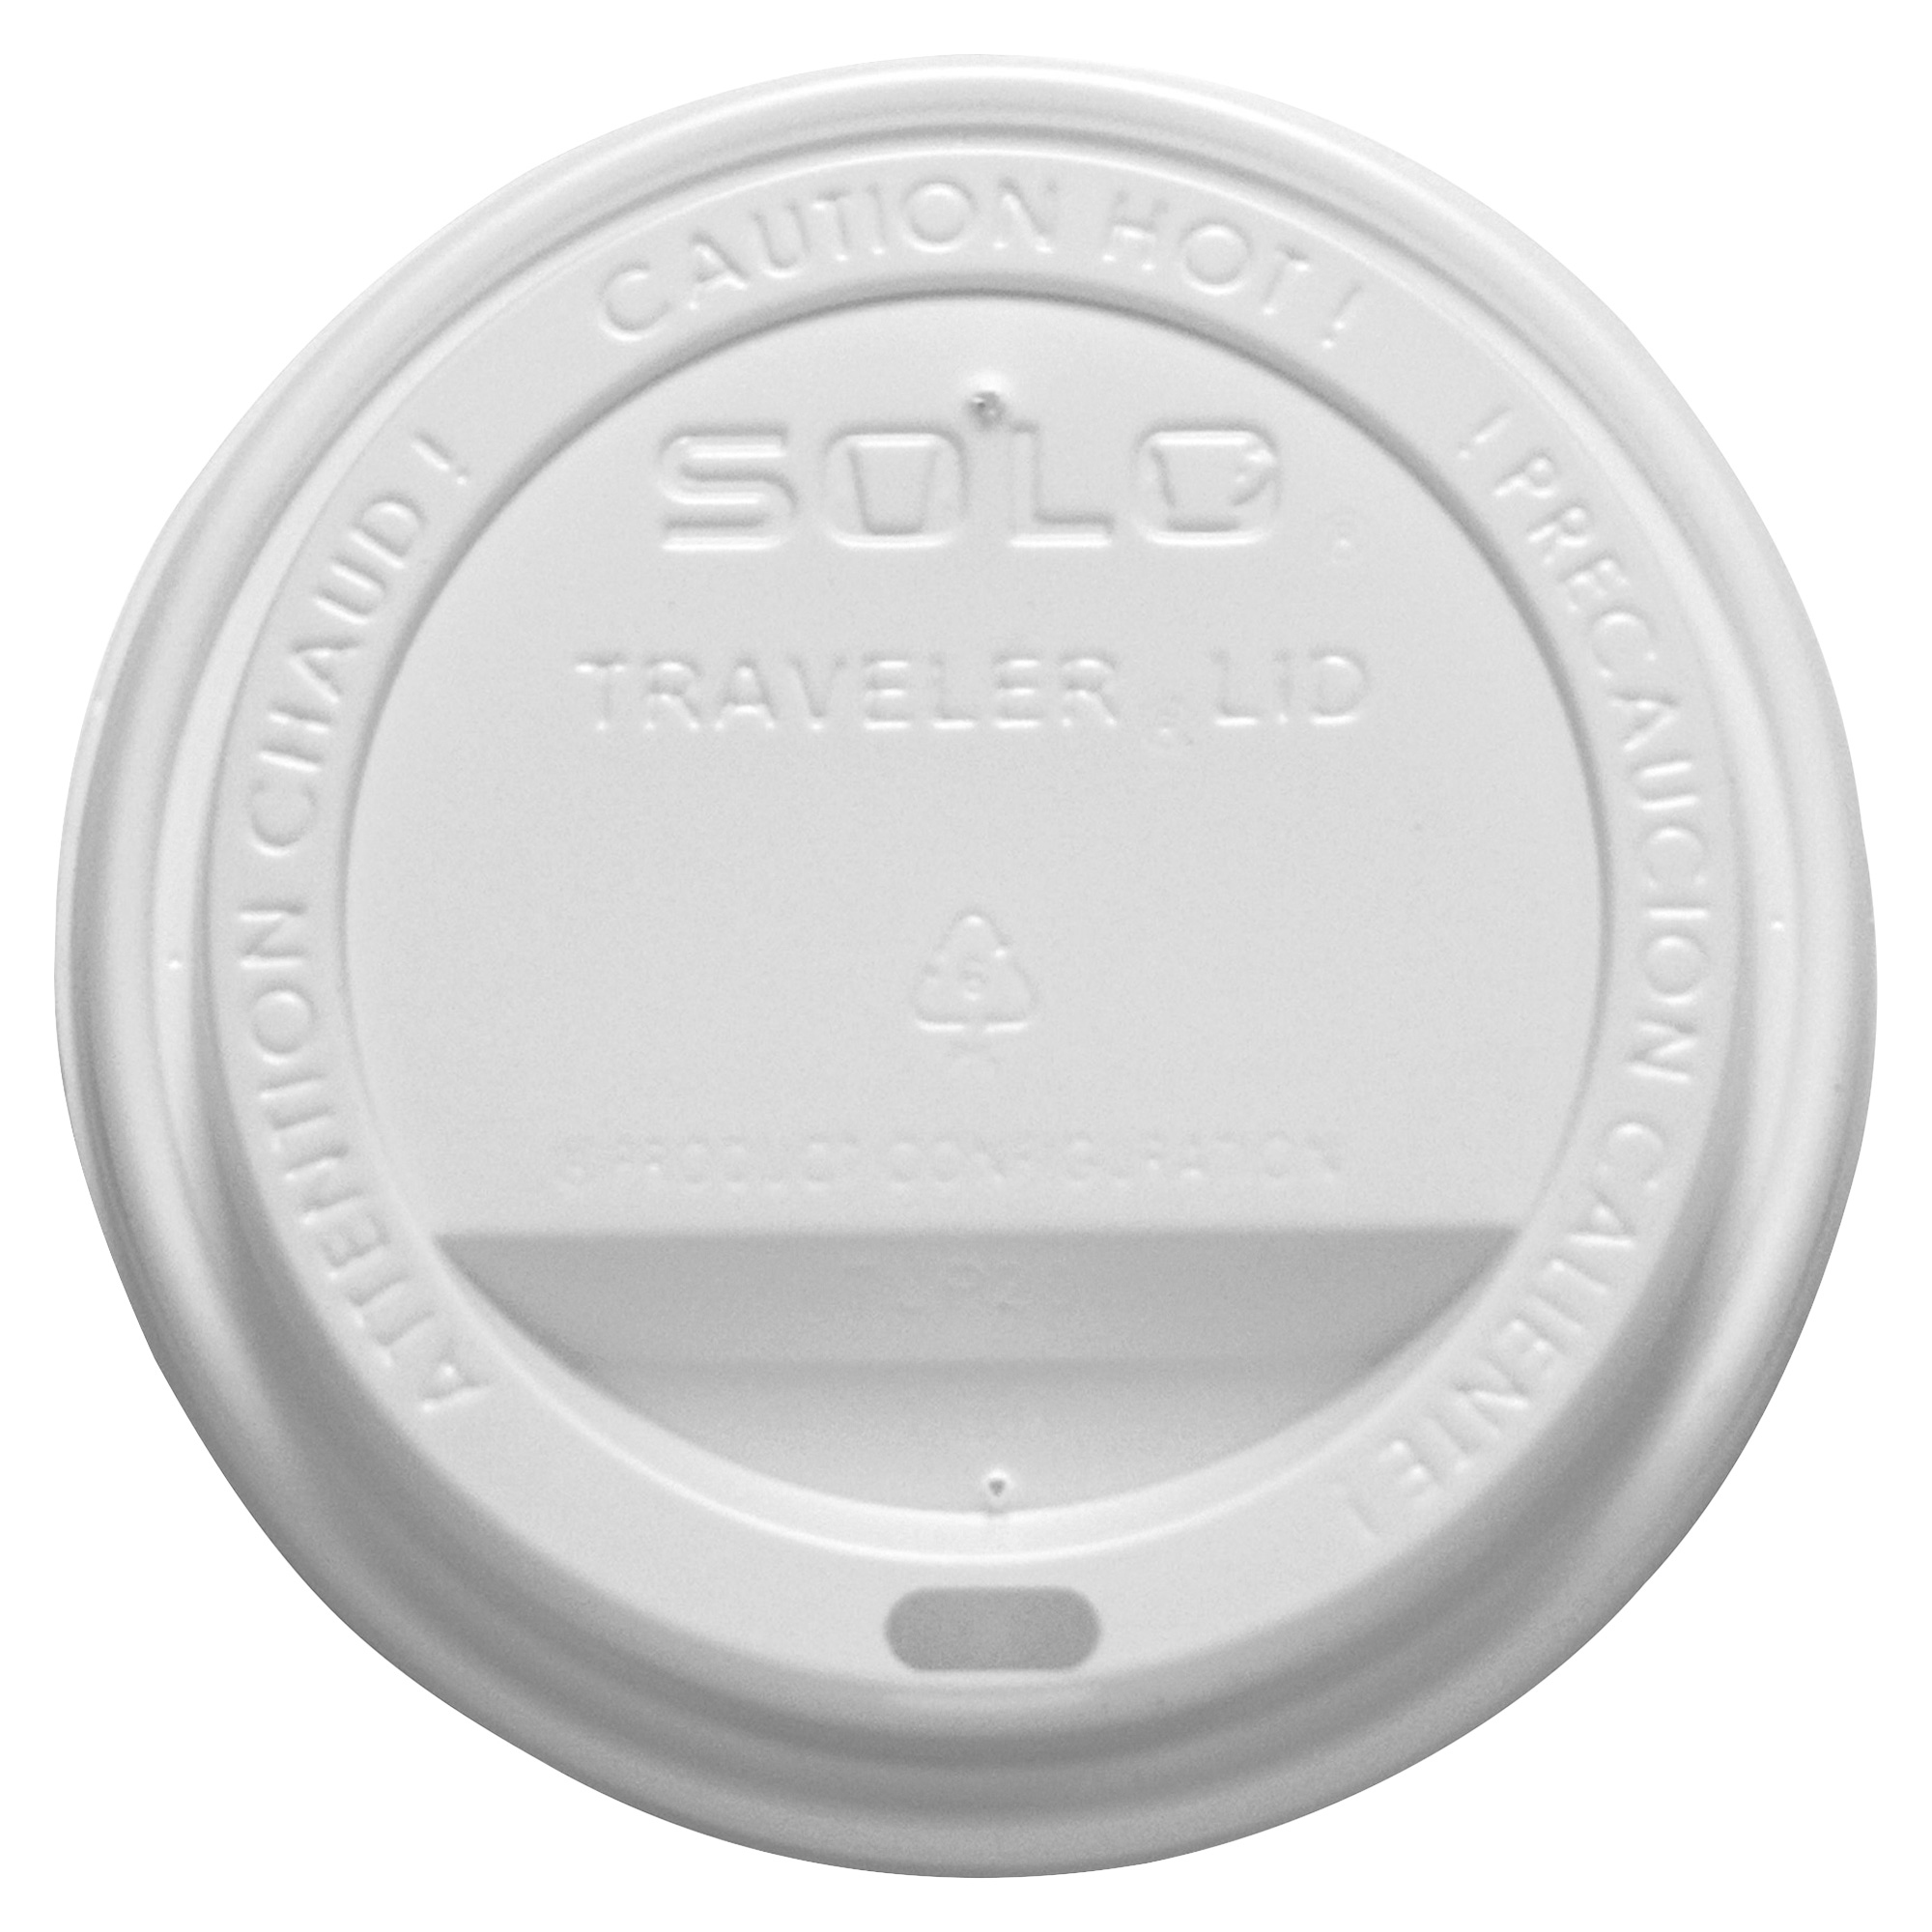 2d4dba6a942 Solo Cup Company Solo Cup Traveler Hot Cup Lids - Polystyrene - 300 /  Carton - White